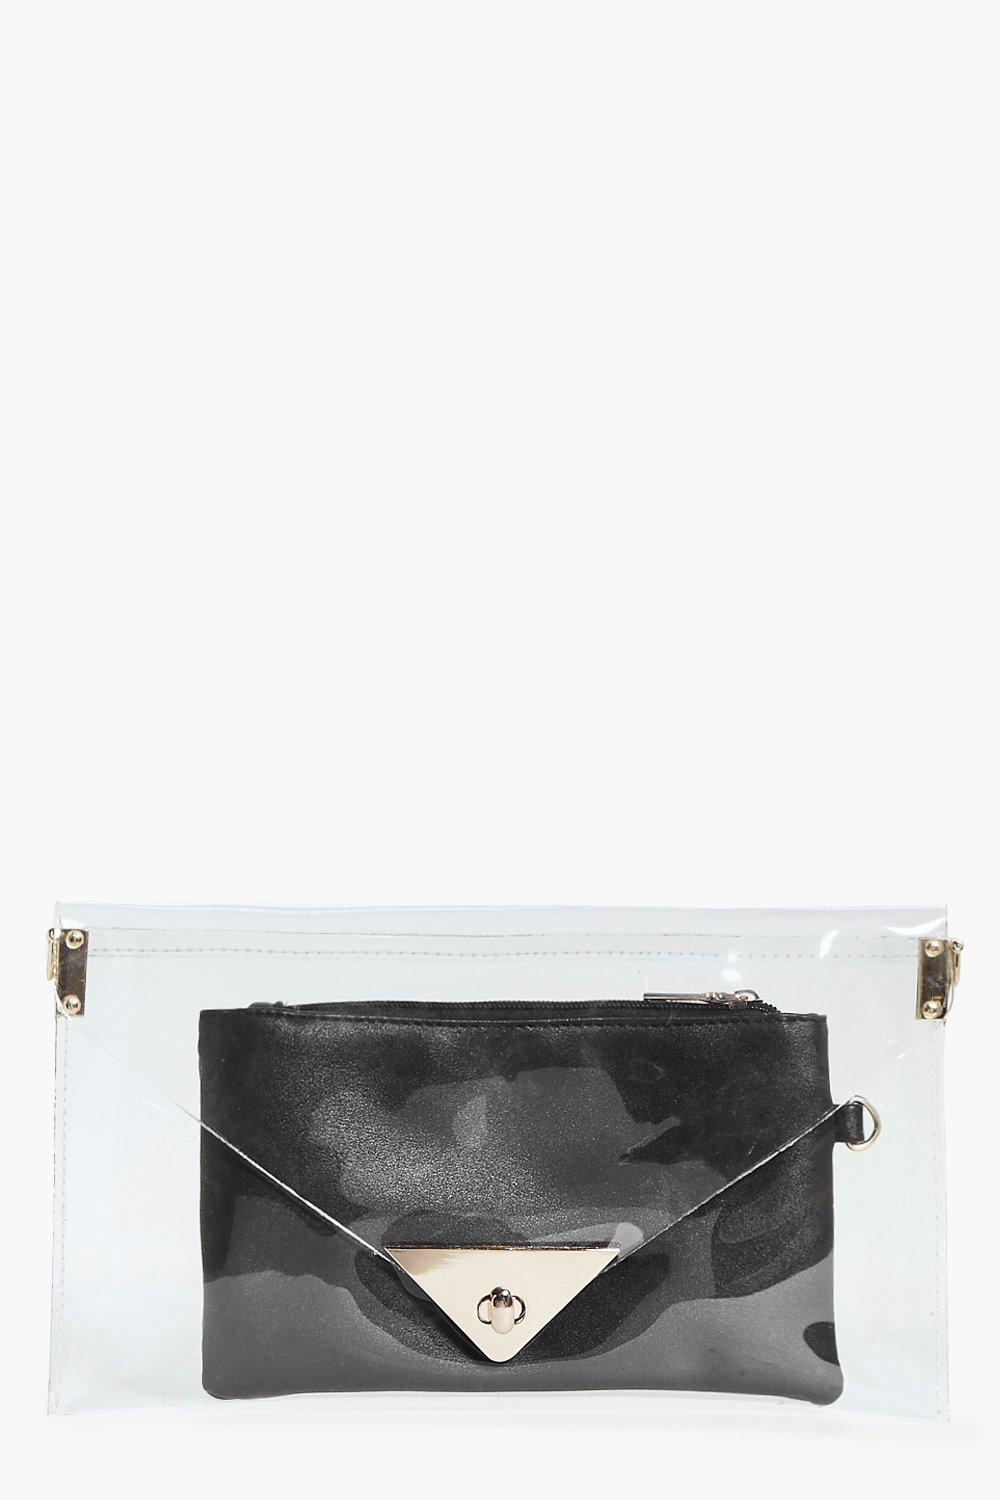 Lola Clear Clutch Bag With Purse Insert